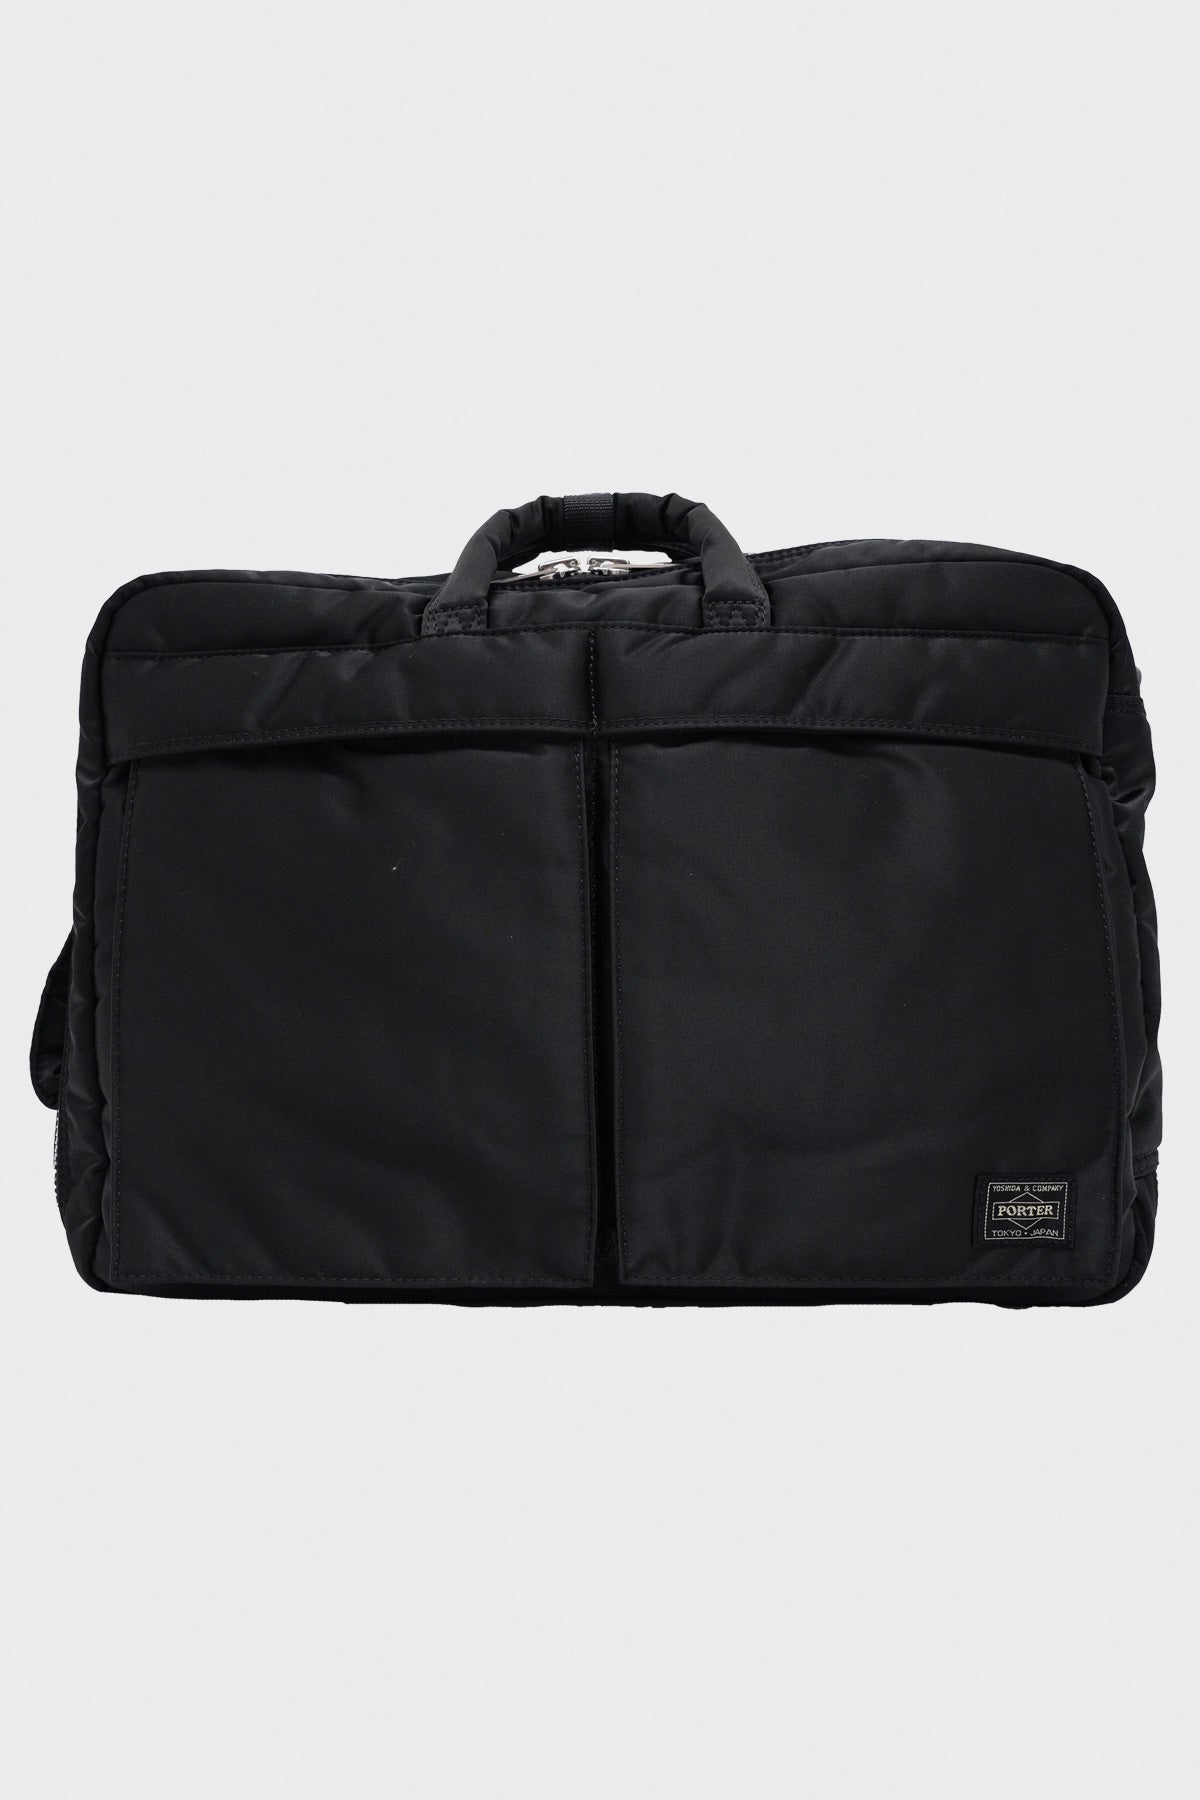 Porter Yoshida and Co - 3 Way Brief Case - Black - Canoe Club